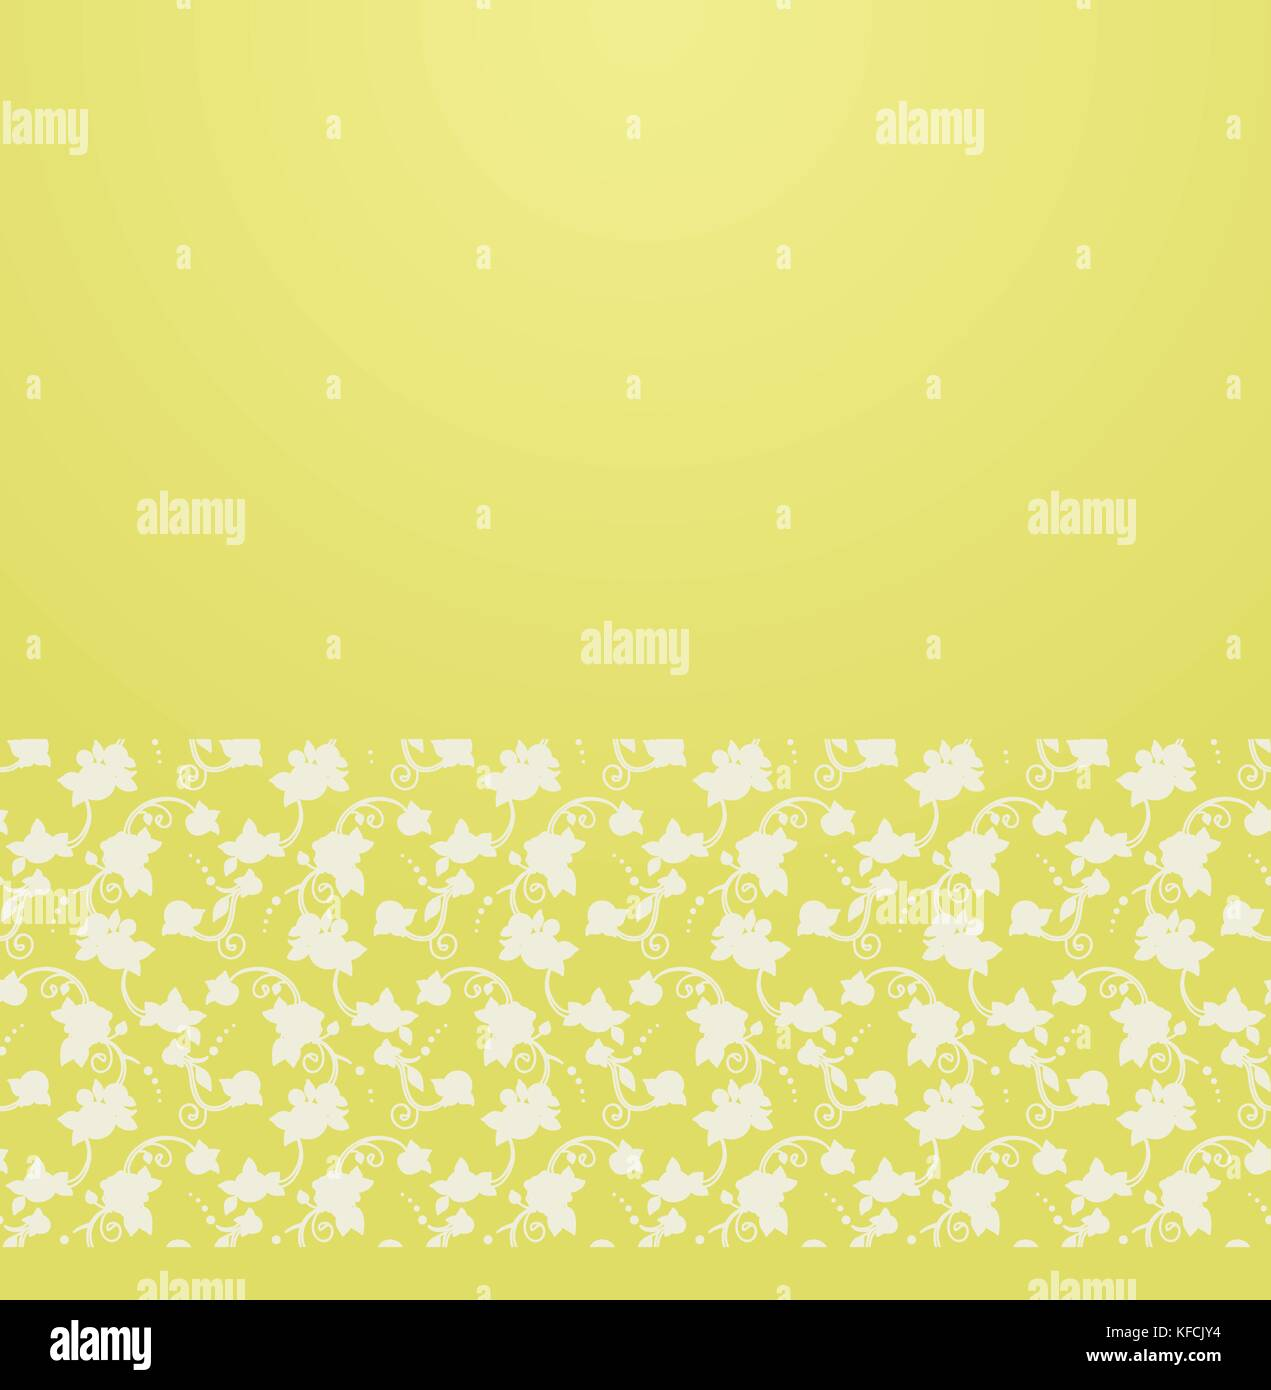 Vector ornate background with ornamental border -  gentle floral ornament - Stock Vector